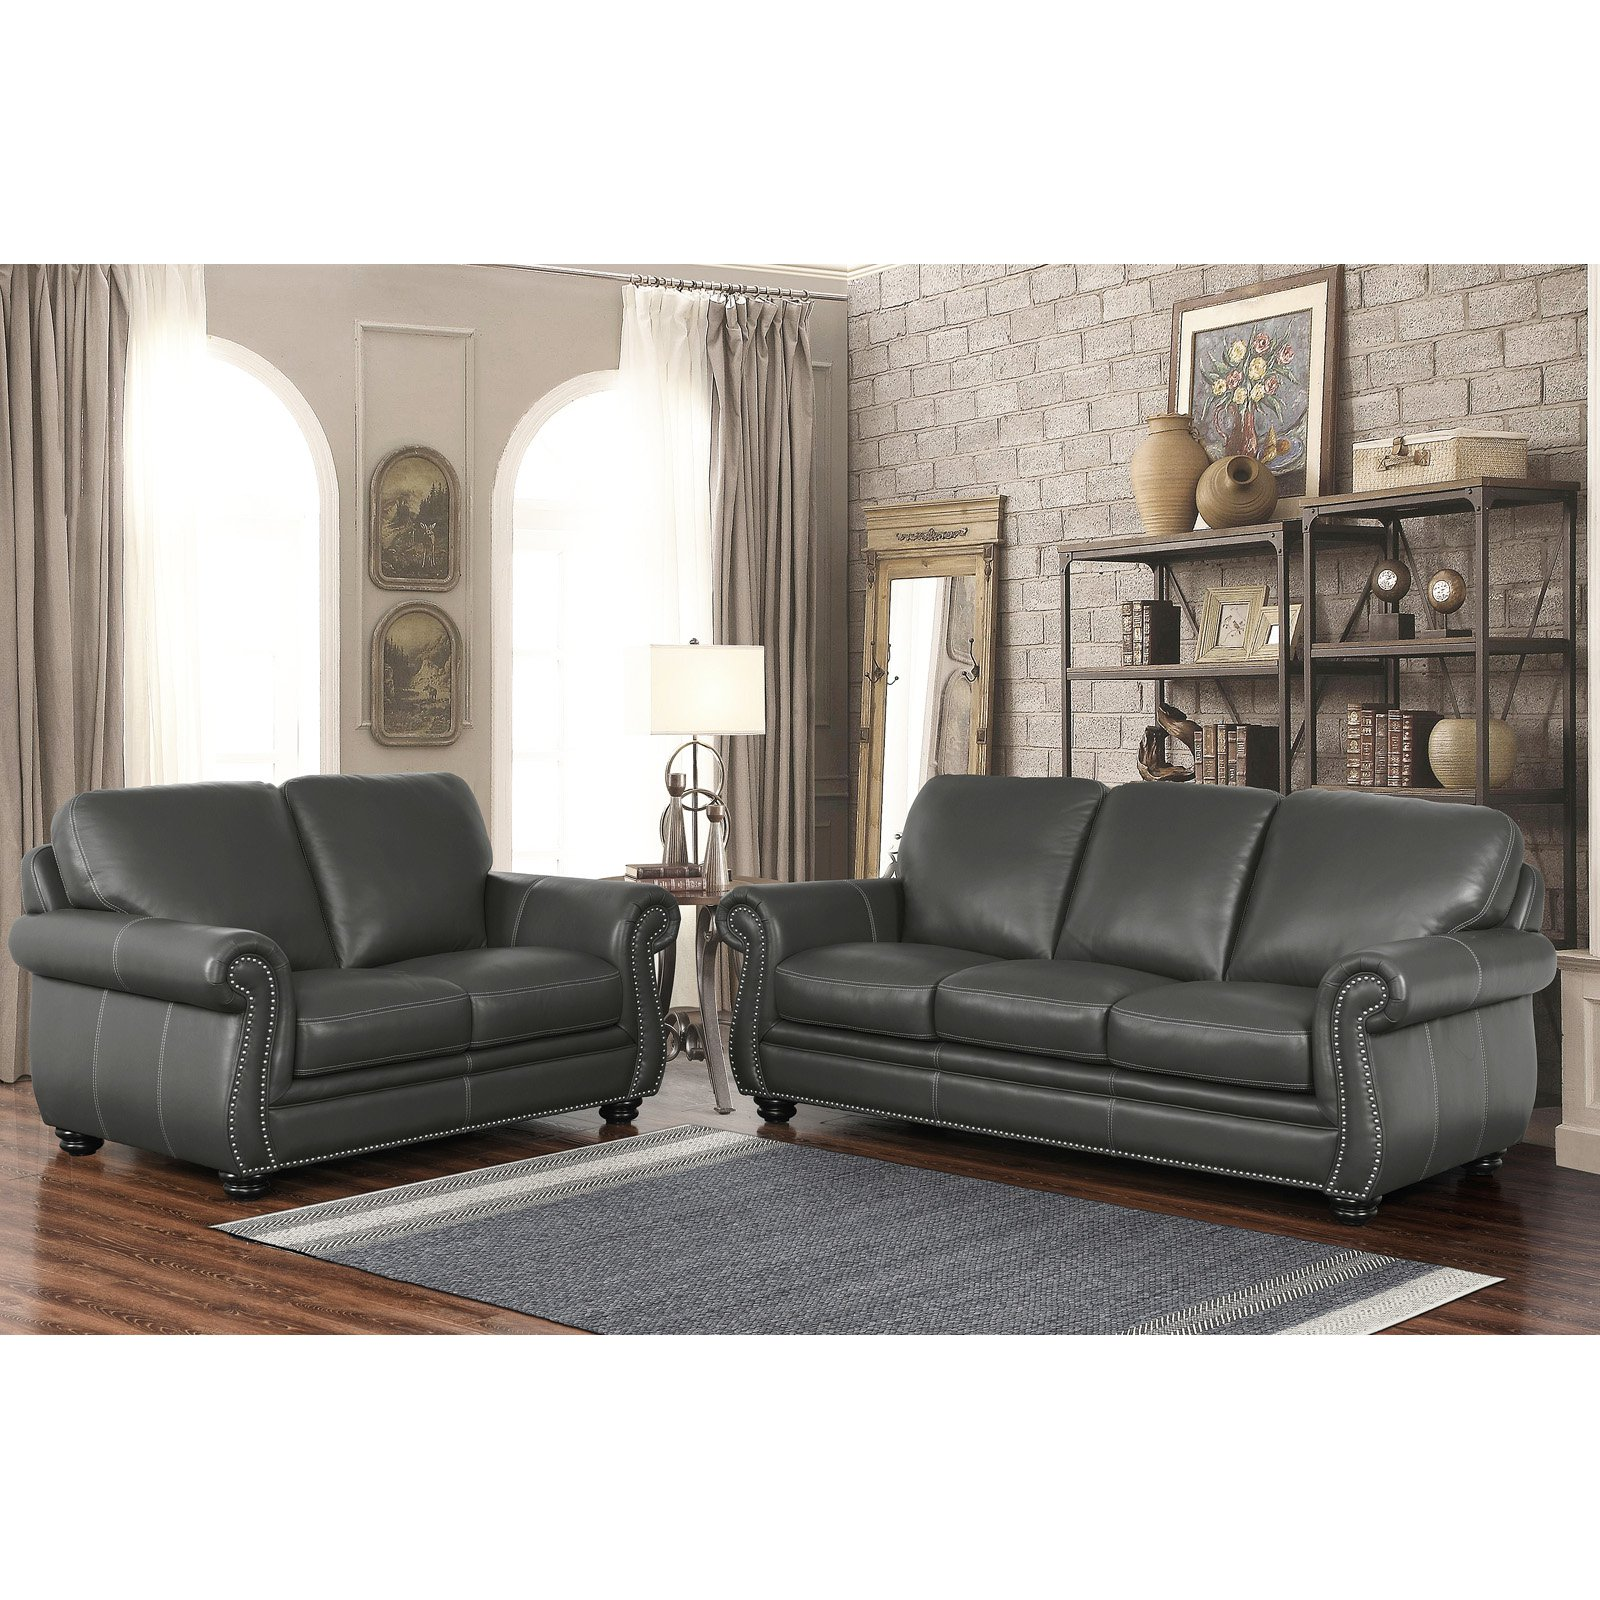 Abbyson Dasher Grey Top Grain Leather Sofa And Loveseat Set